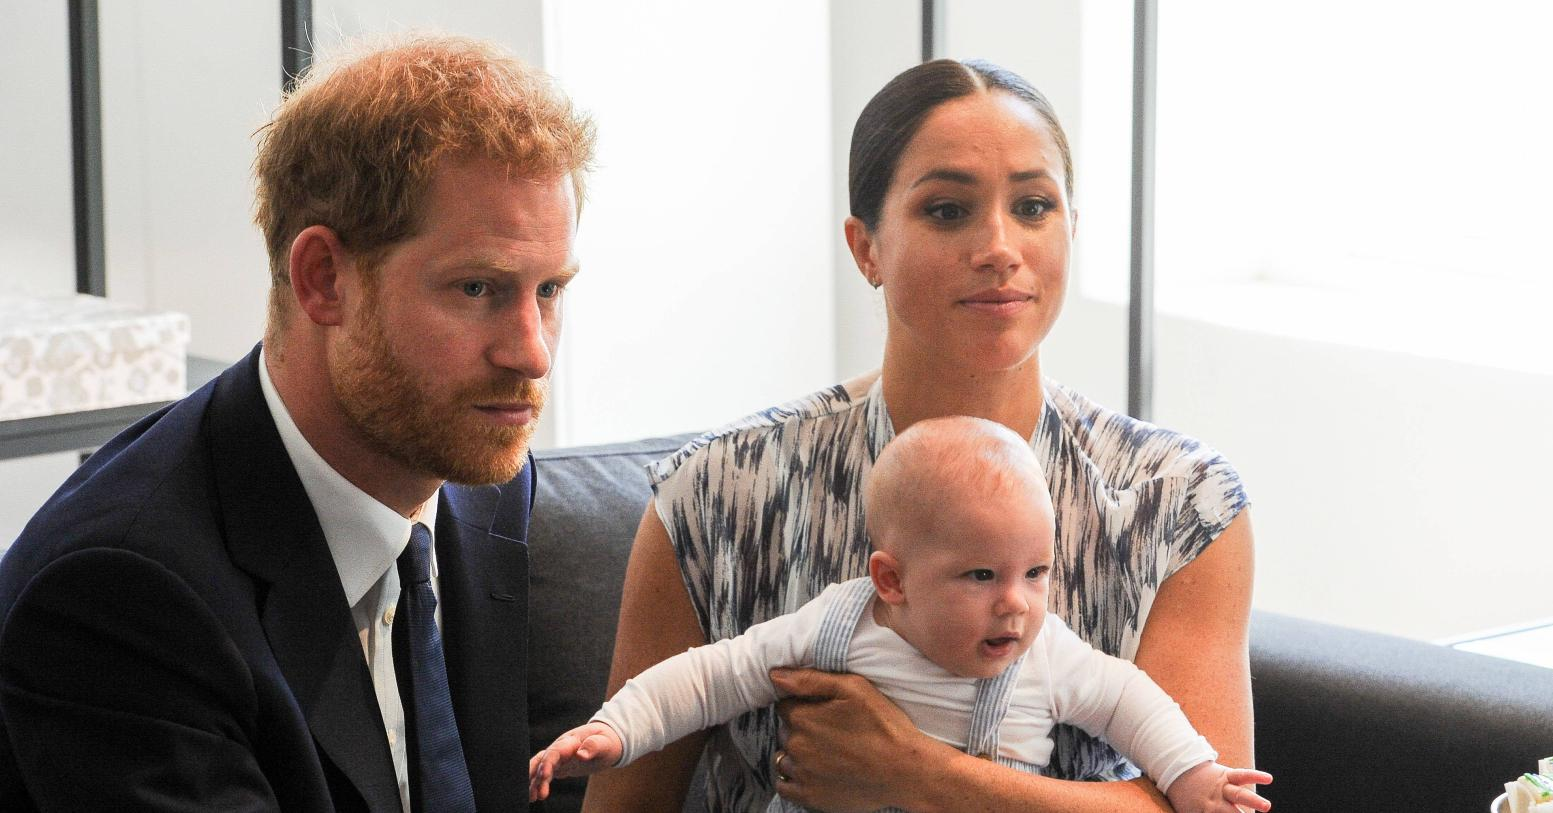 A Snub? Meghan Markle Says Buckingham Palace Removed Her Name From Son Archie's Birth Certificate